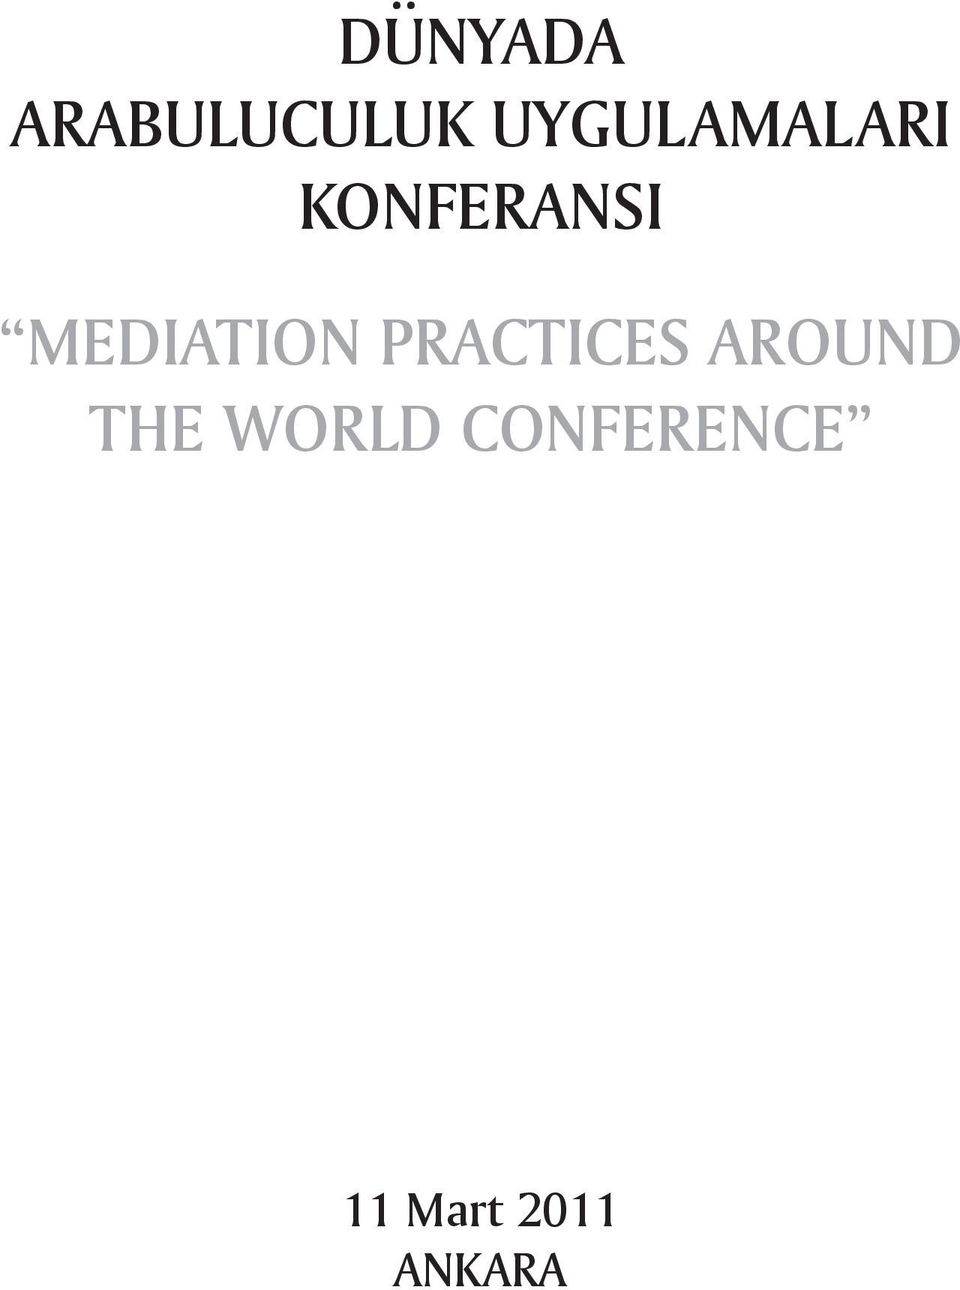 MEDIATION PRACTICES AROUND